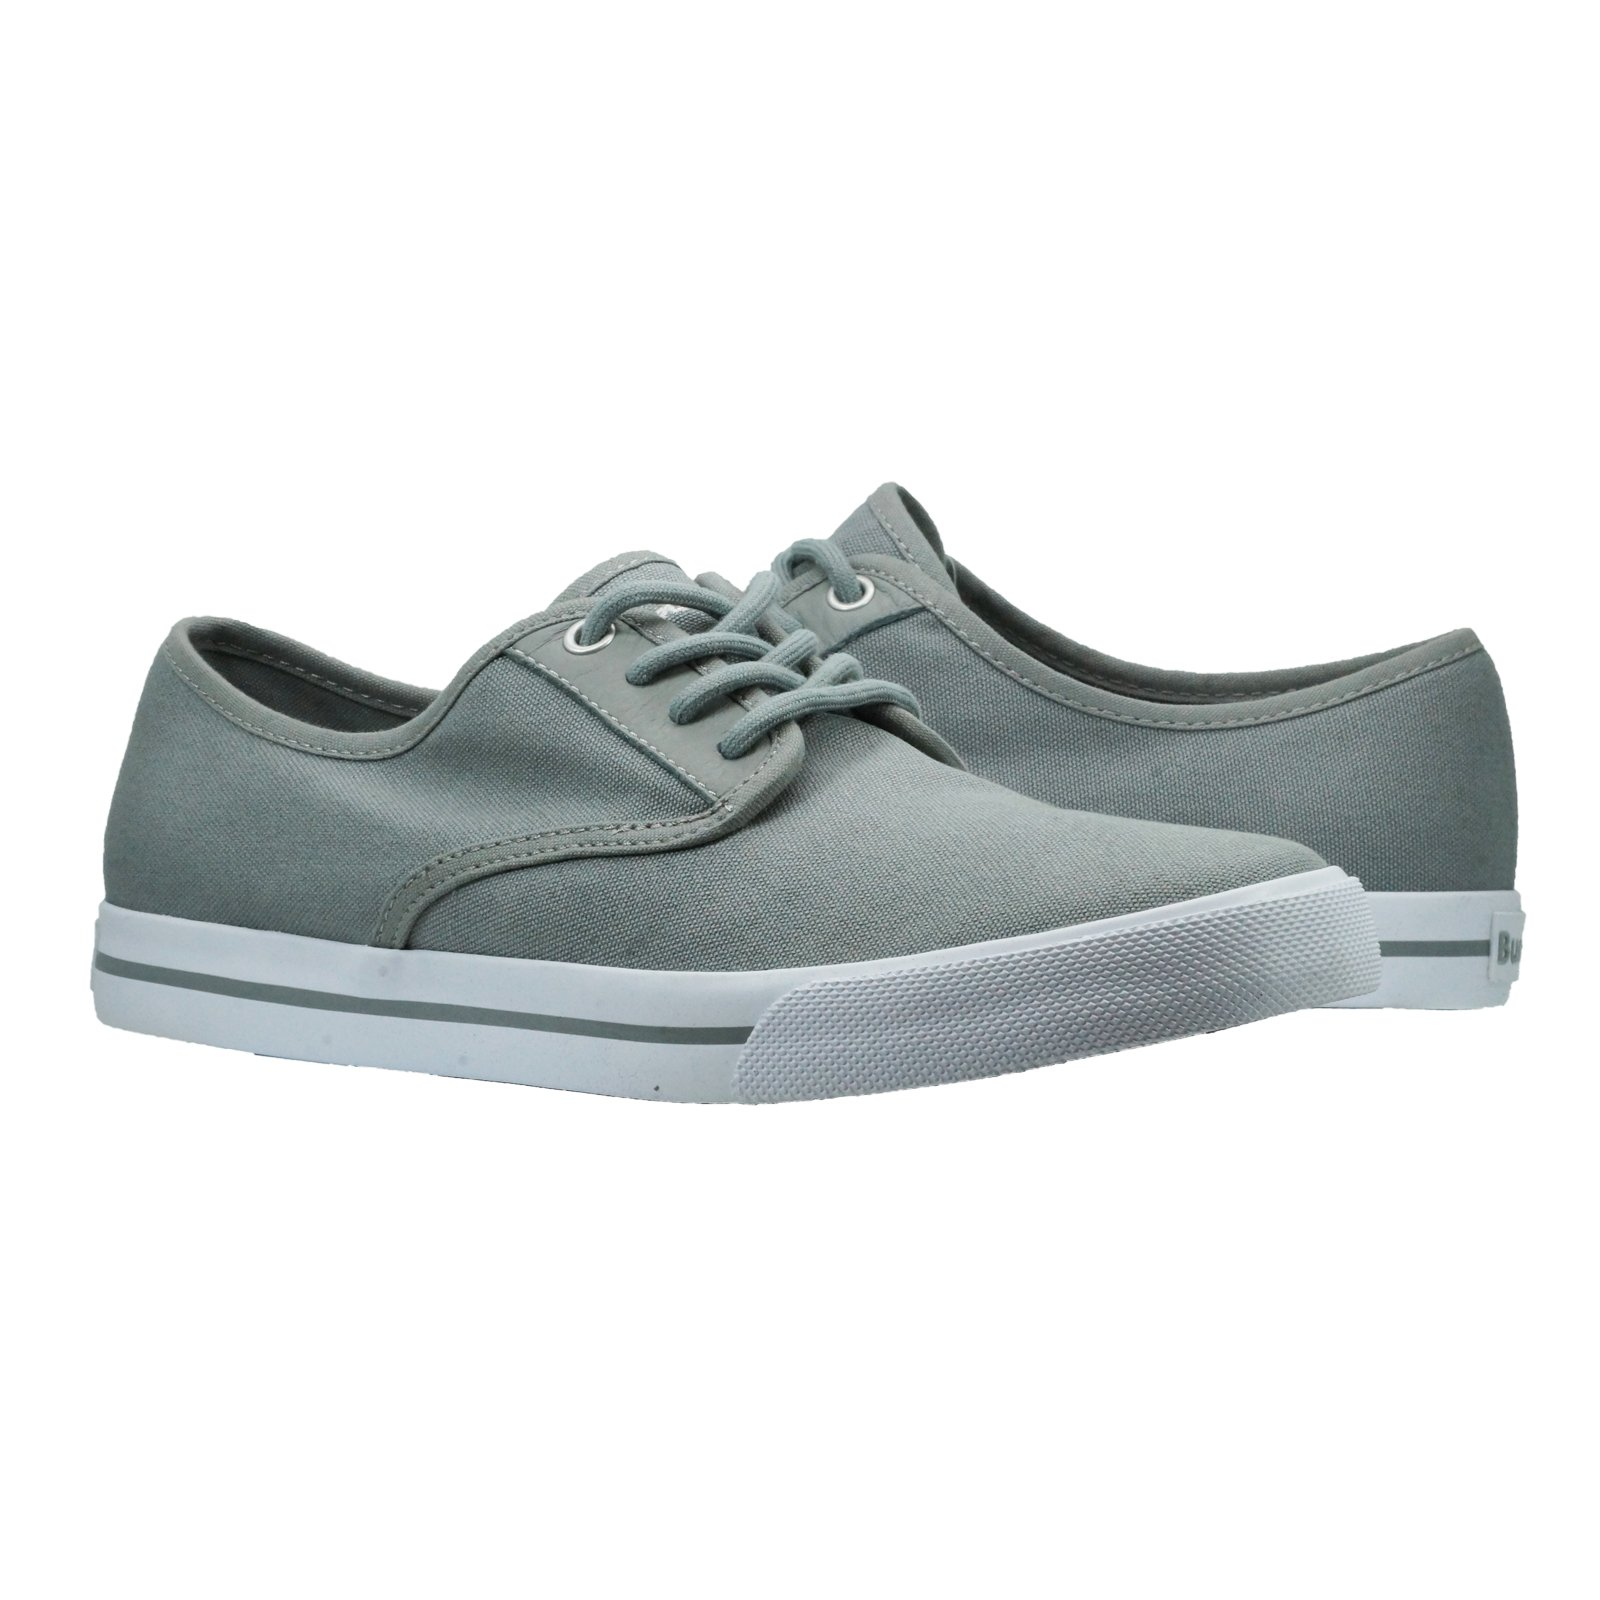 Burnetie Men's Grey Toe Hugger M Low Top Sneaker 12 M US